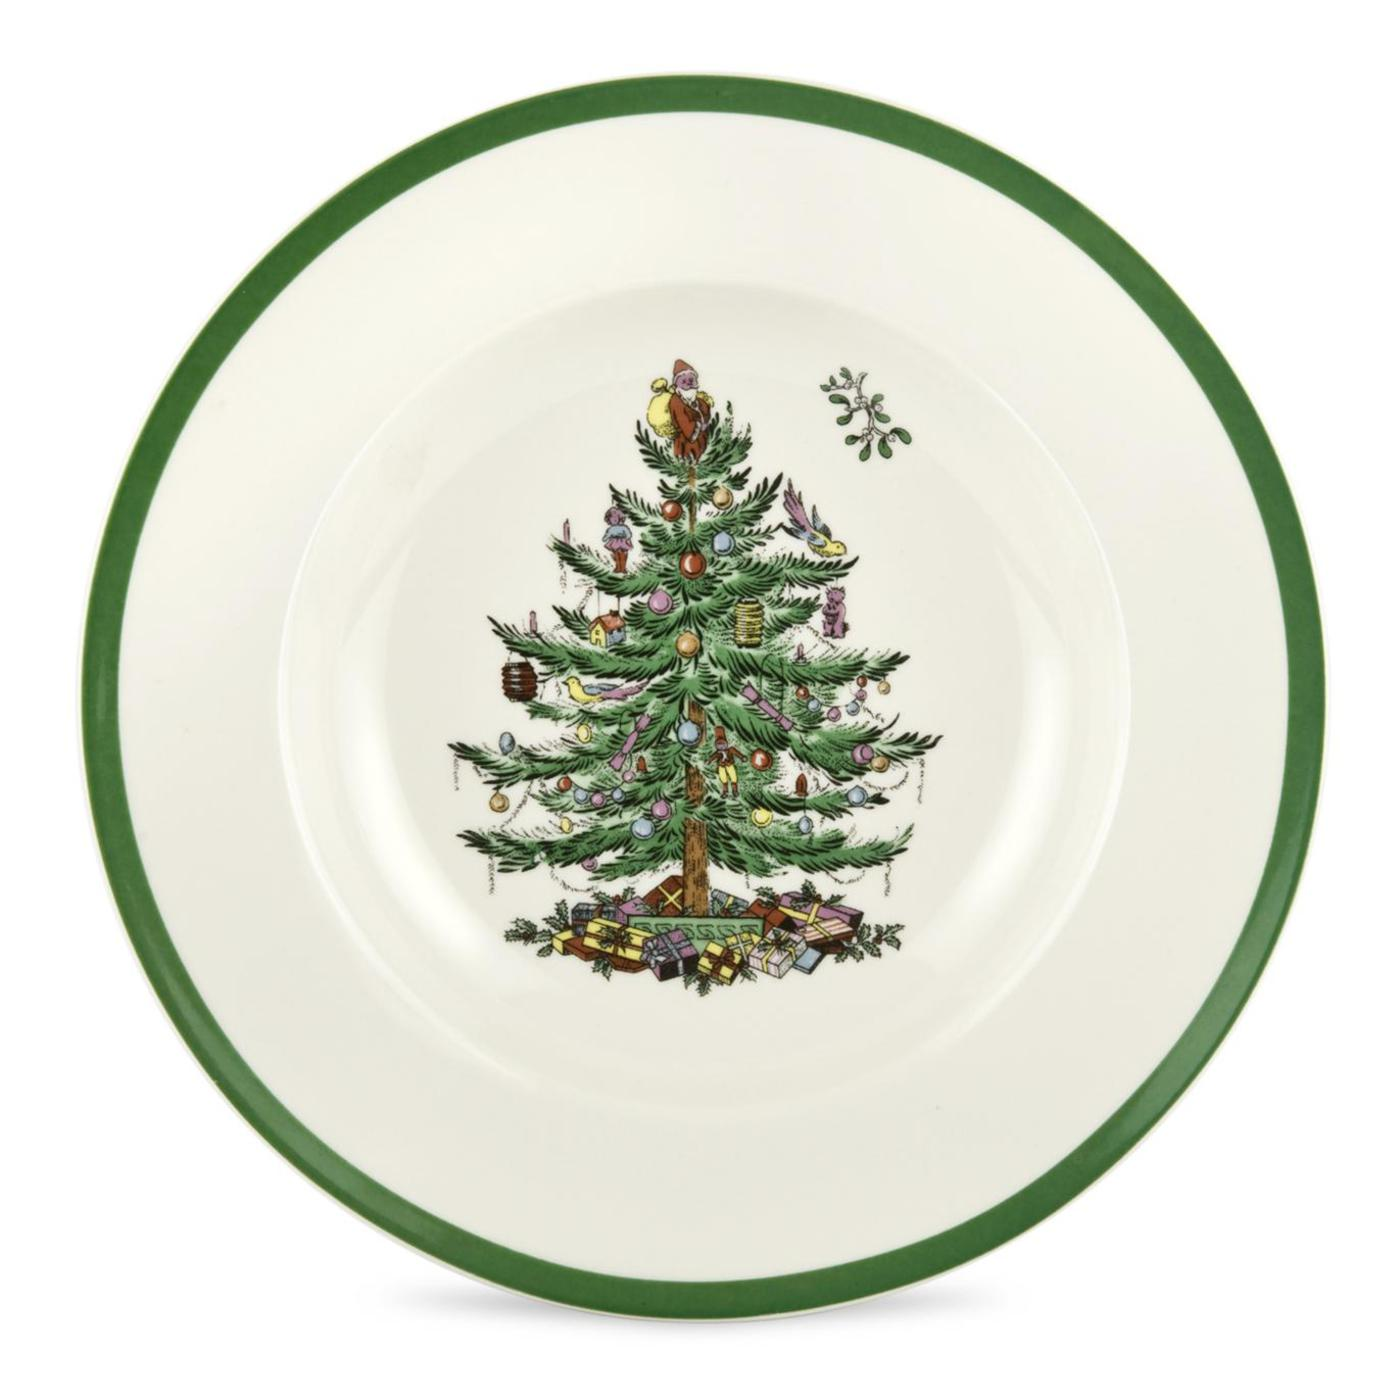 Spode Christmas Tree Set of 4 Soup Plates image number 0